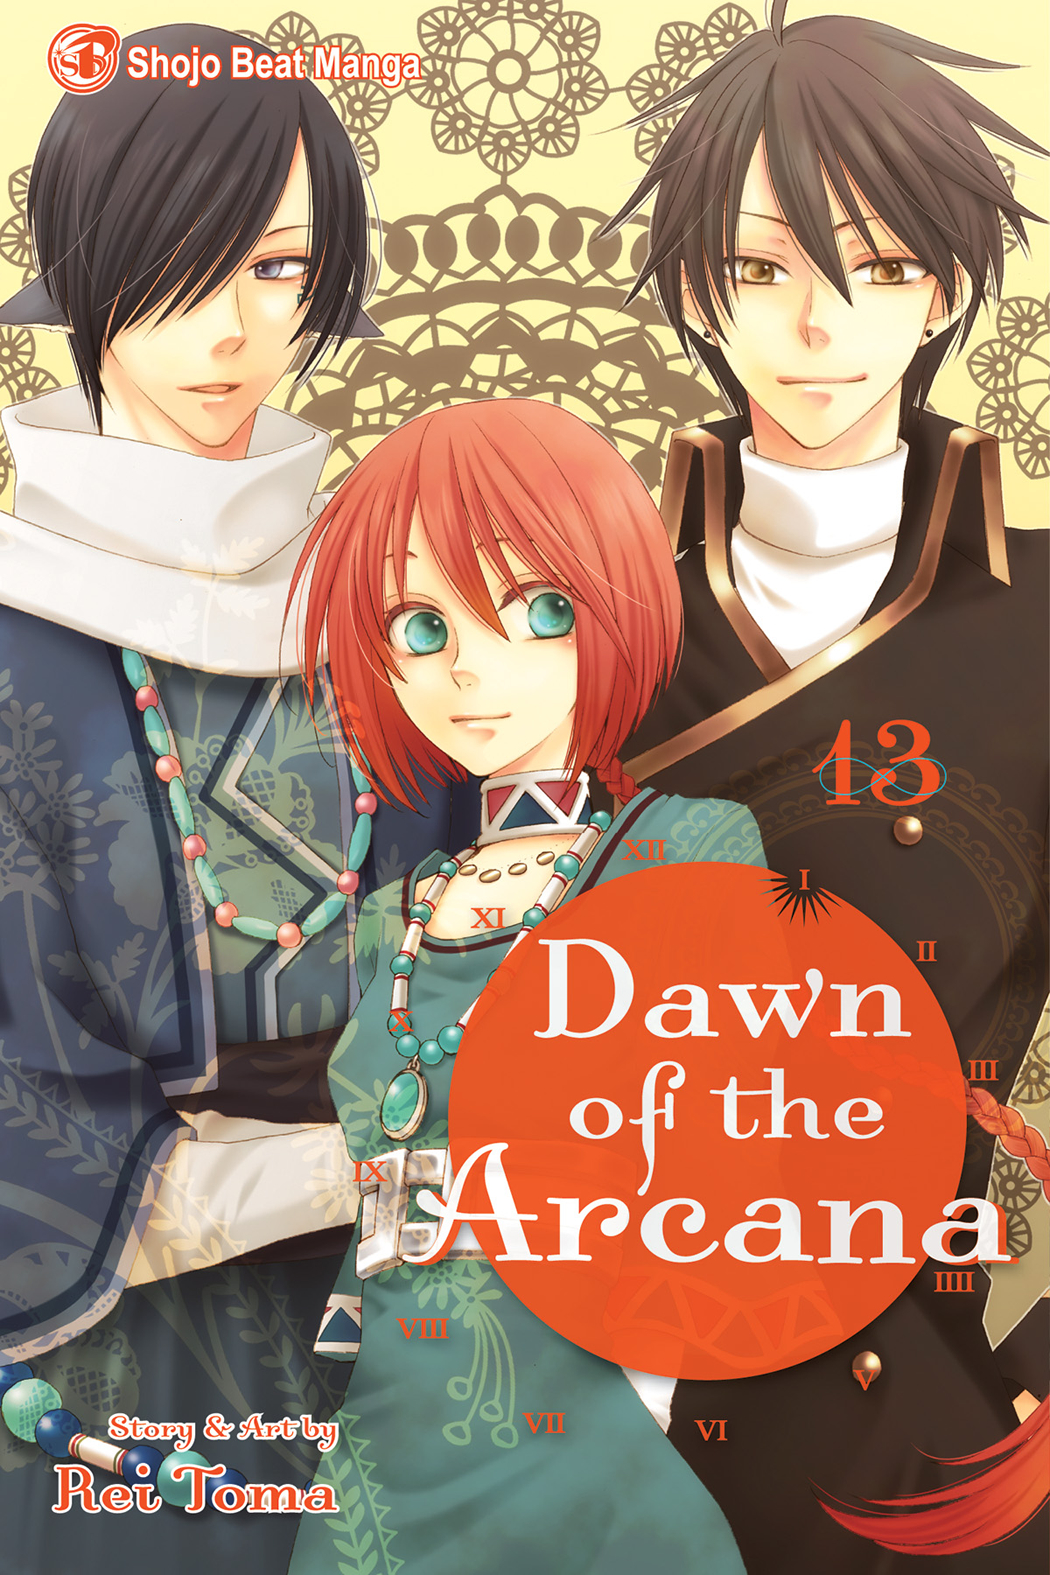 DAWN OF THE ARCANA GN VOL 13